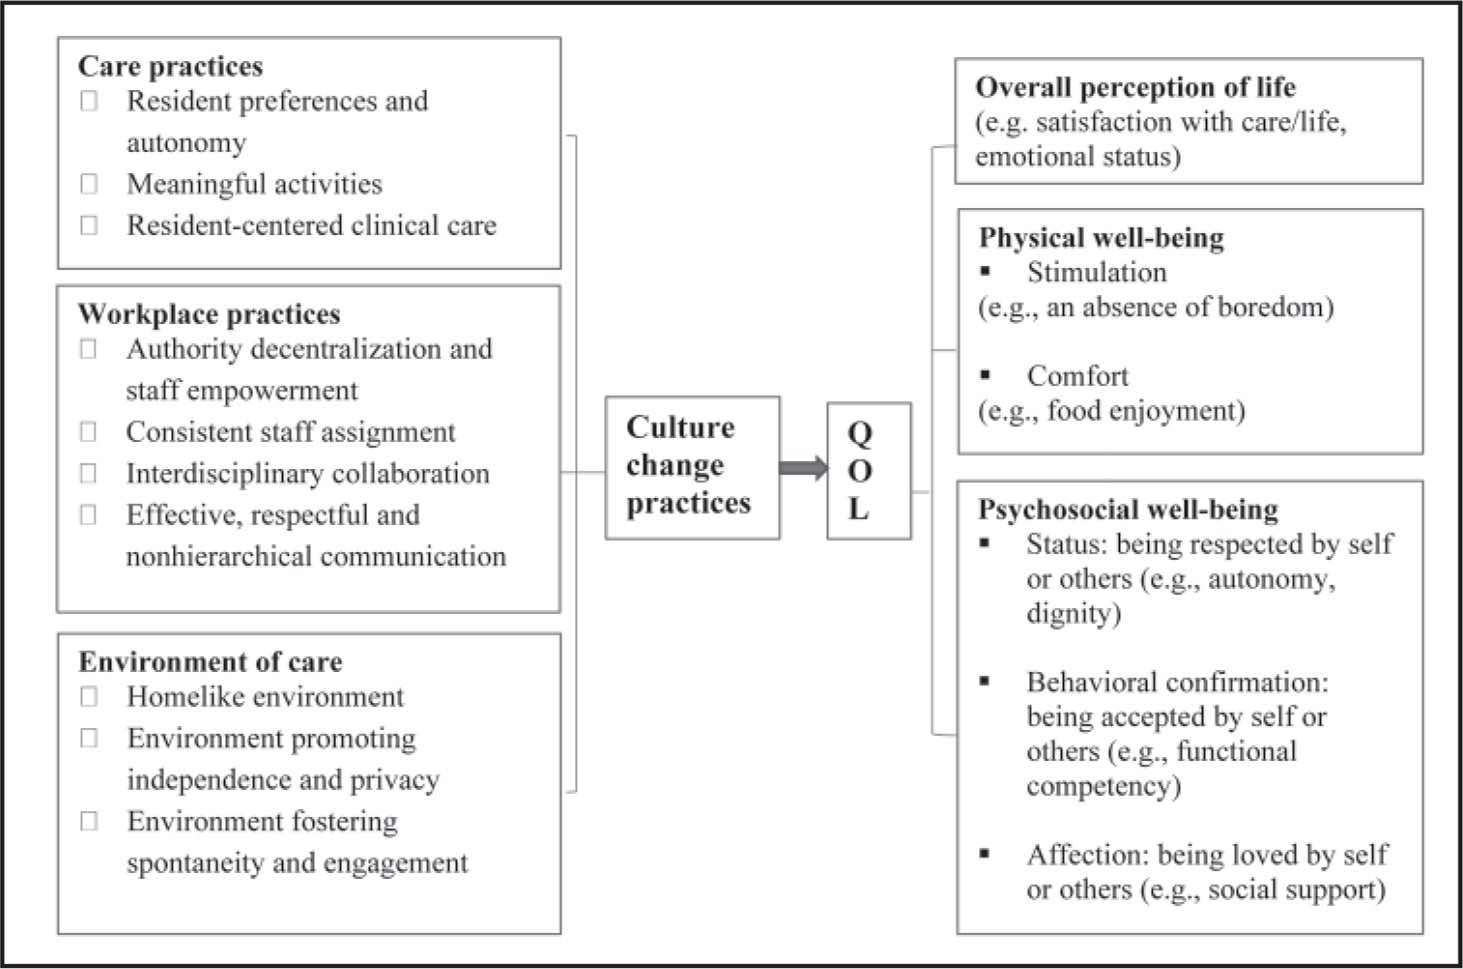 Framework for evaluating the relationship between nursing home culture change and residents' quality of life (QOL).